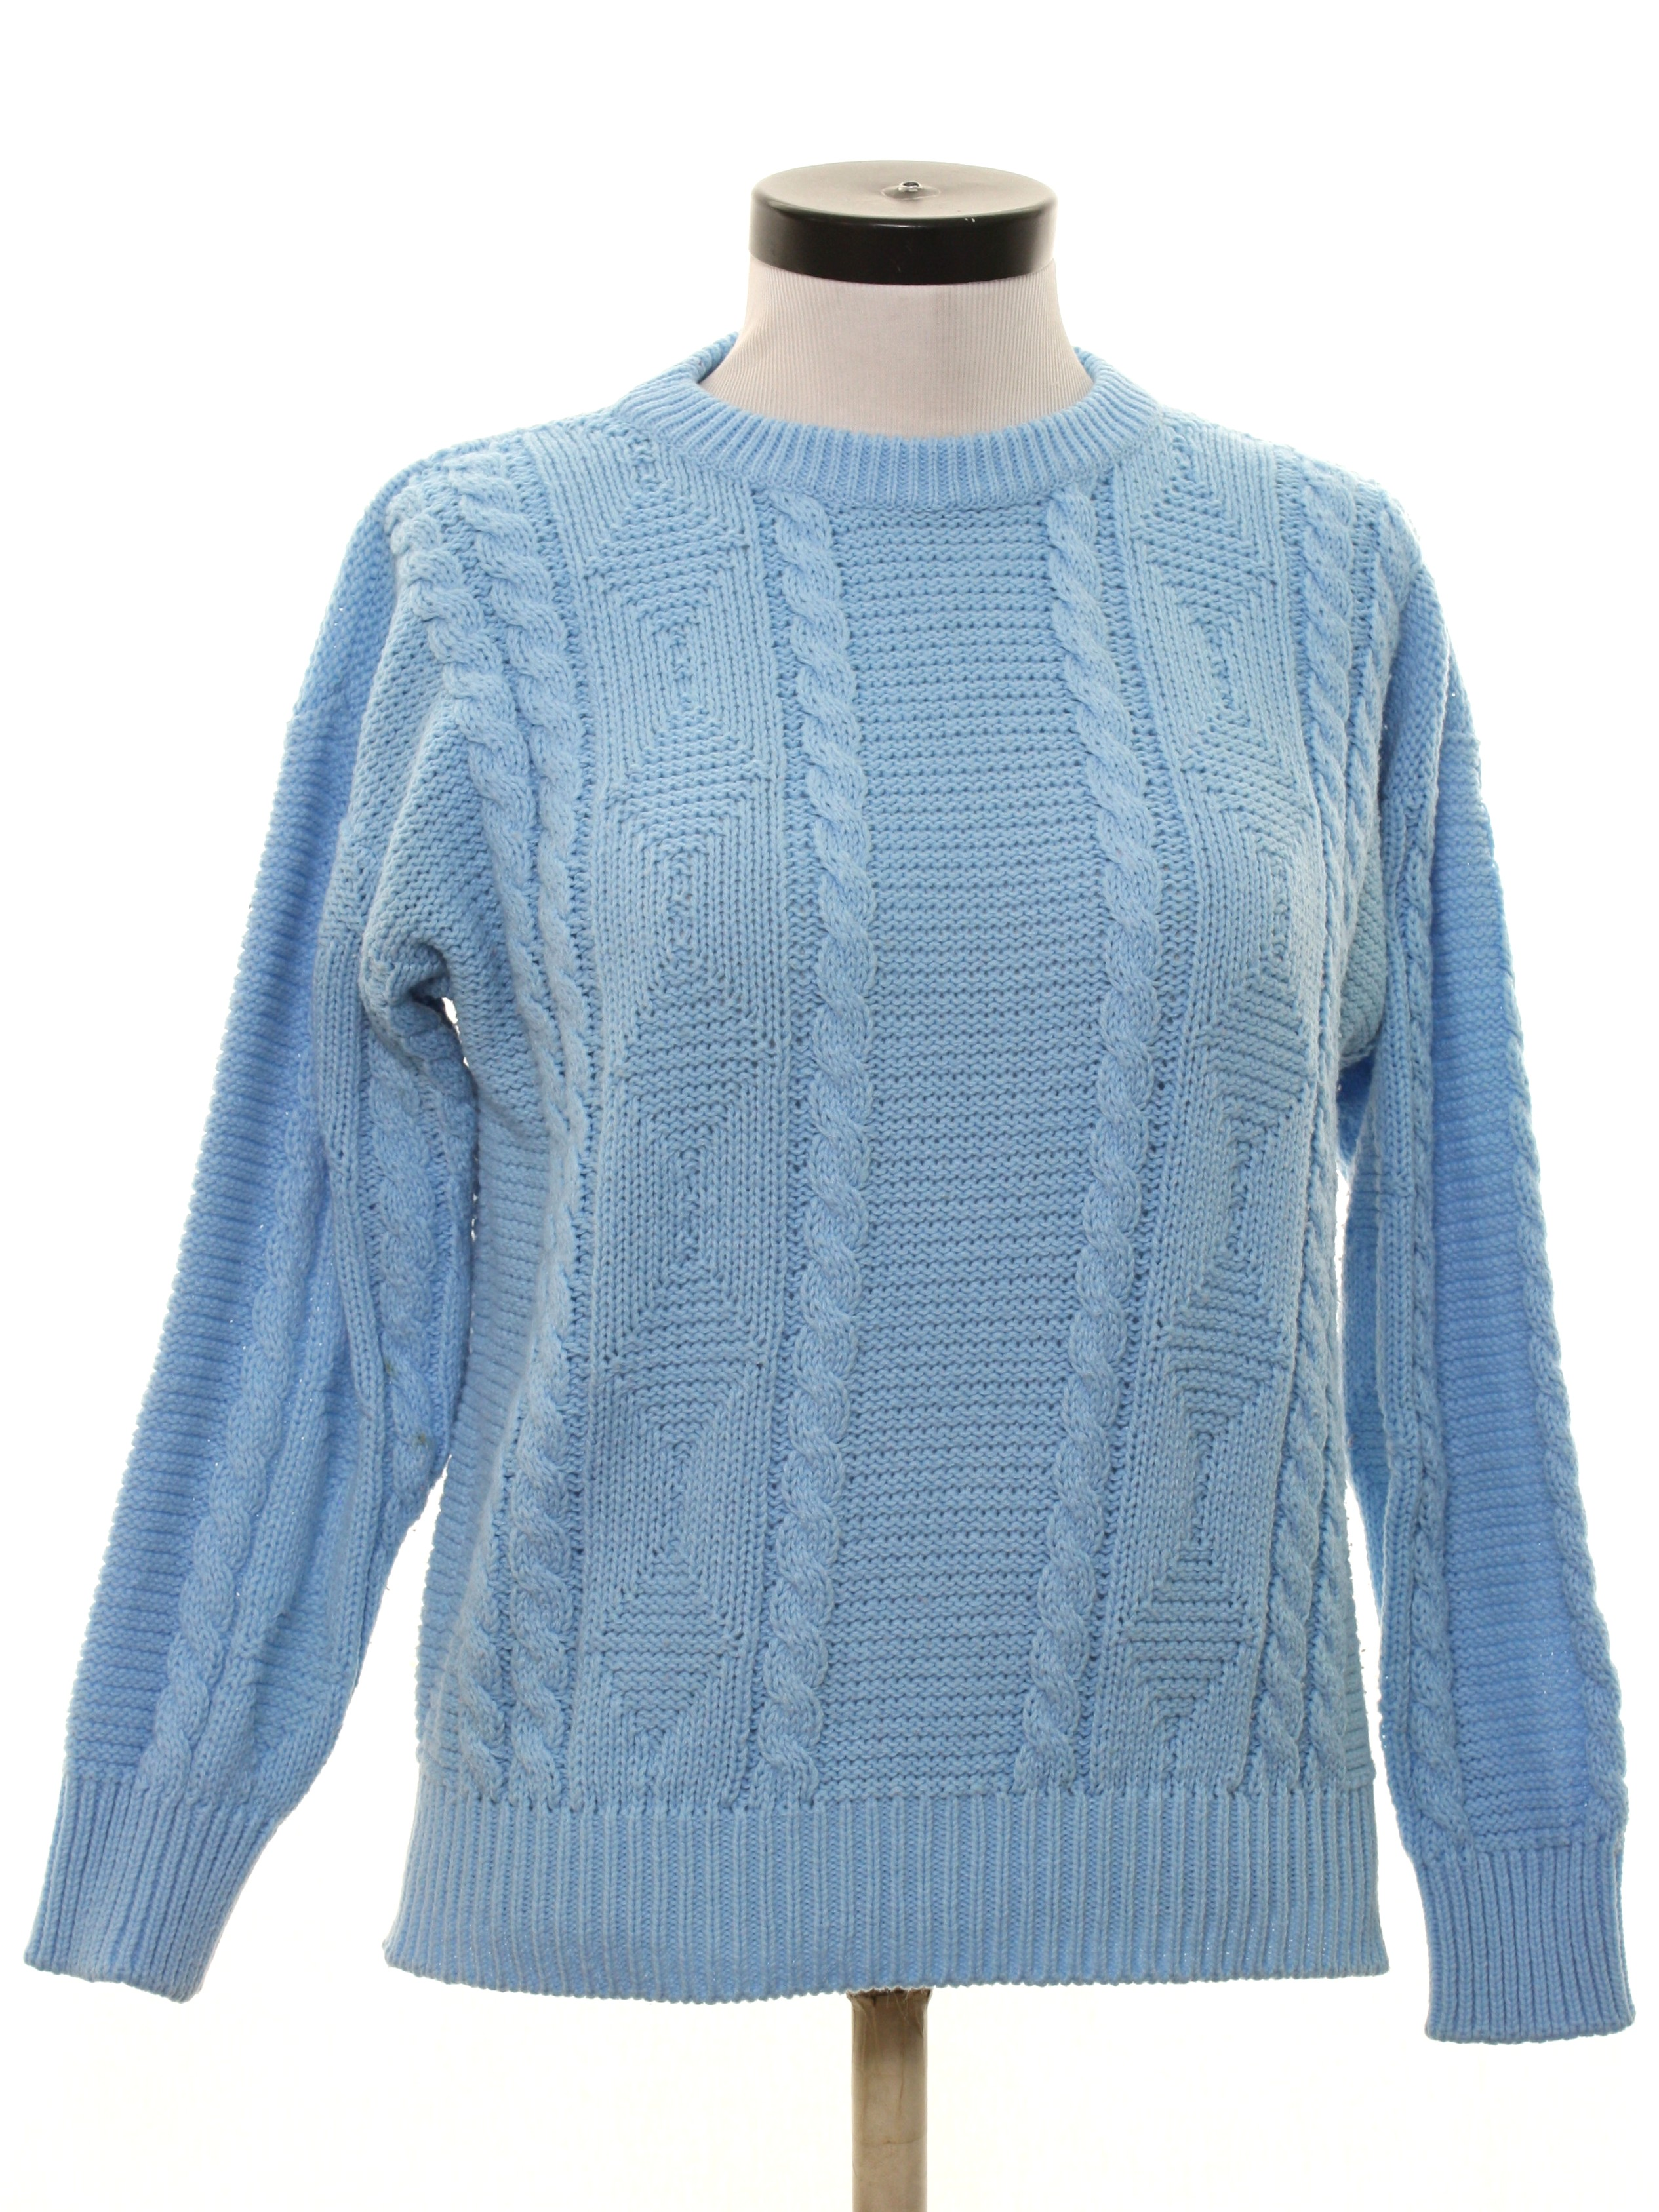 Retro 1960s Sweater 60s Style Made In Late 70s Gerard